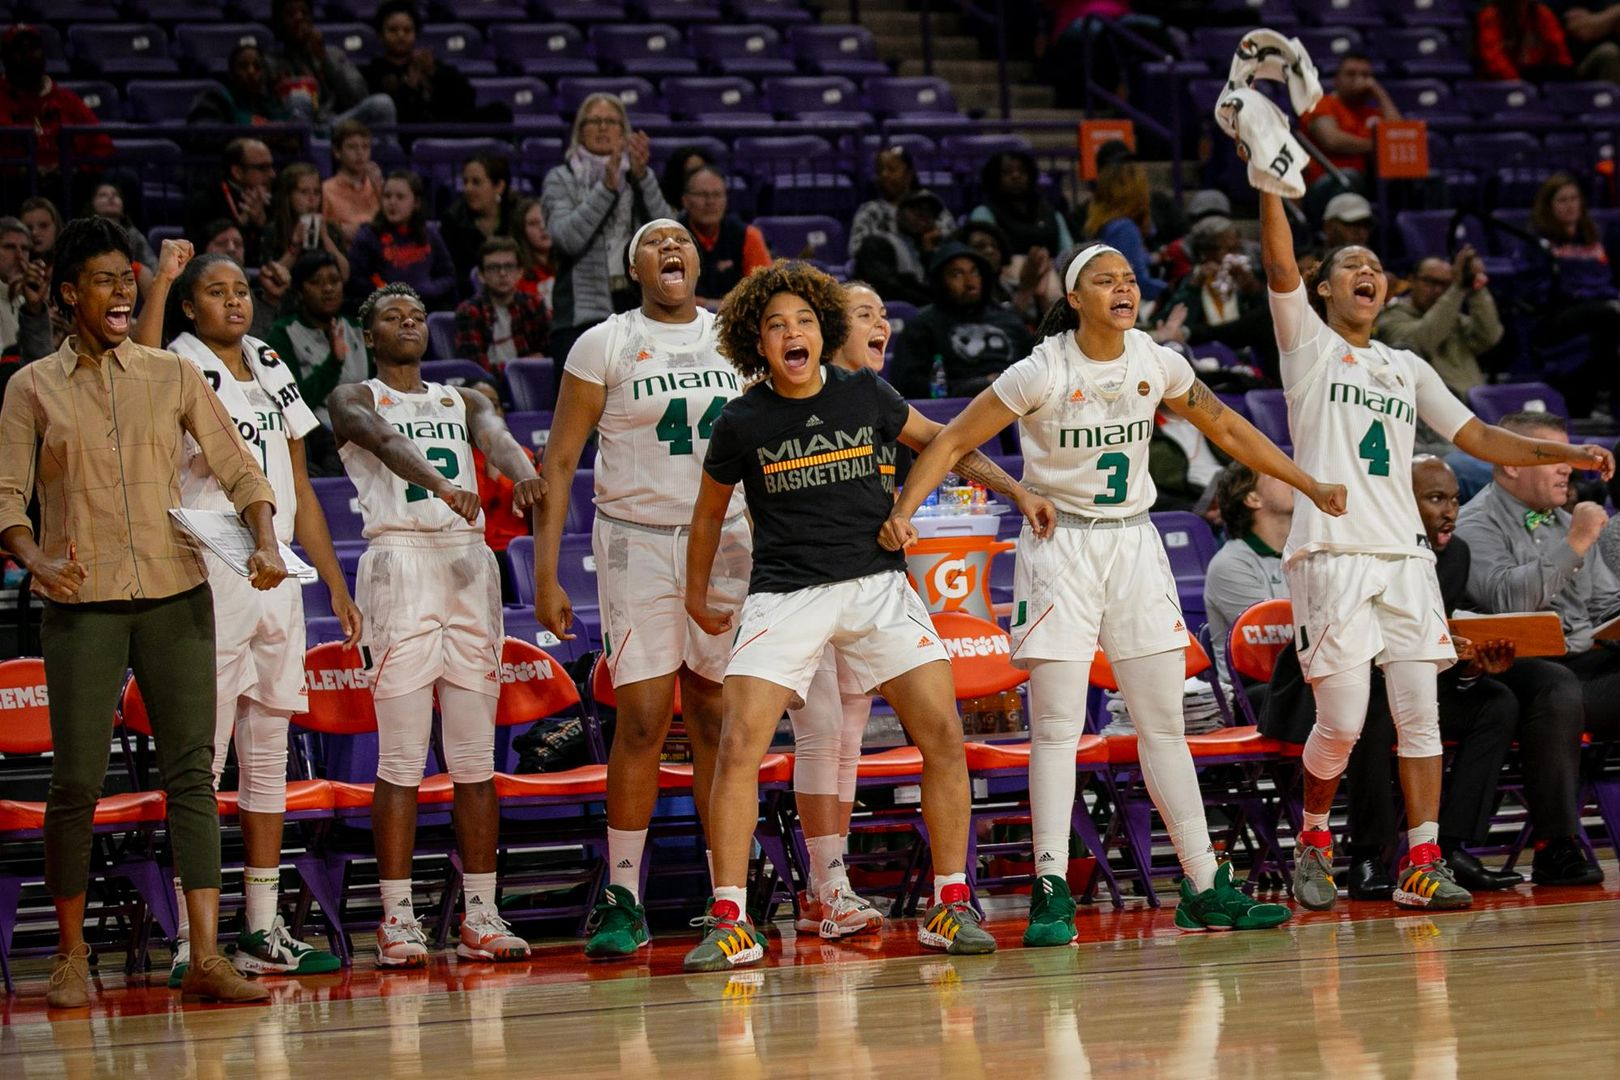 Canes Complete Season Sweep of Clemson